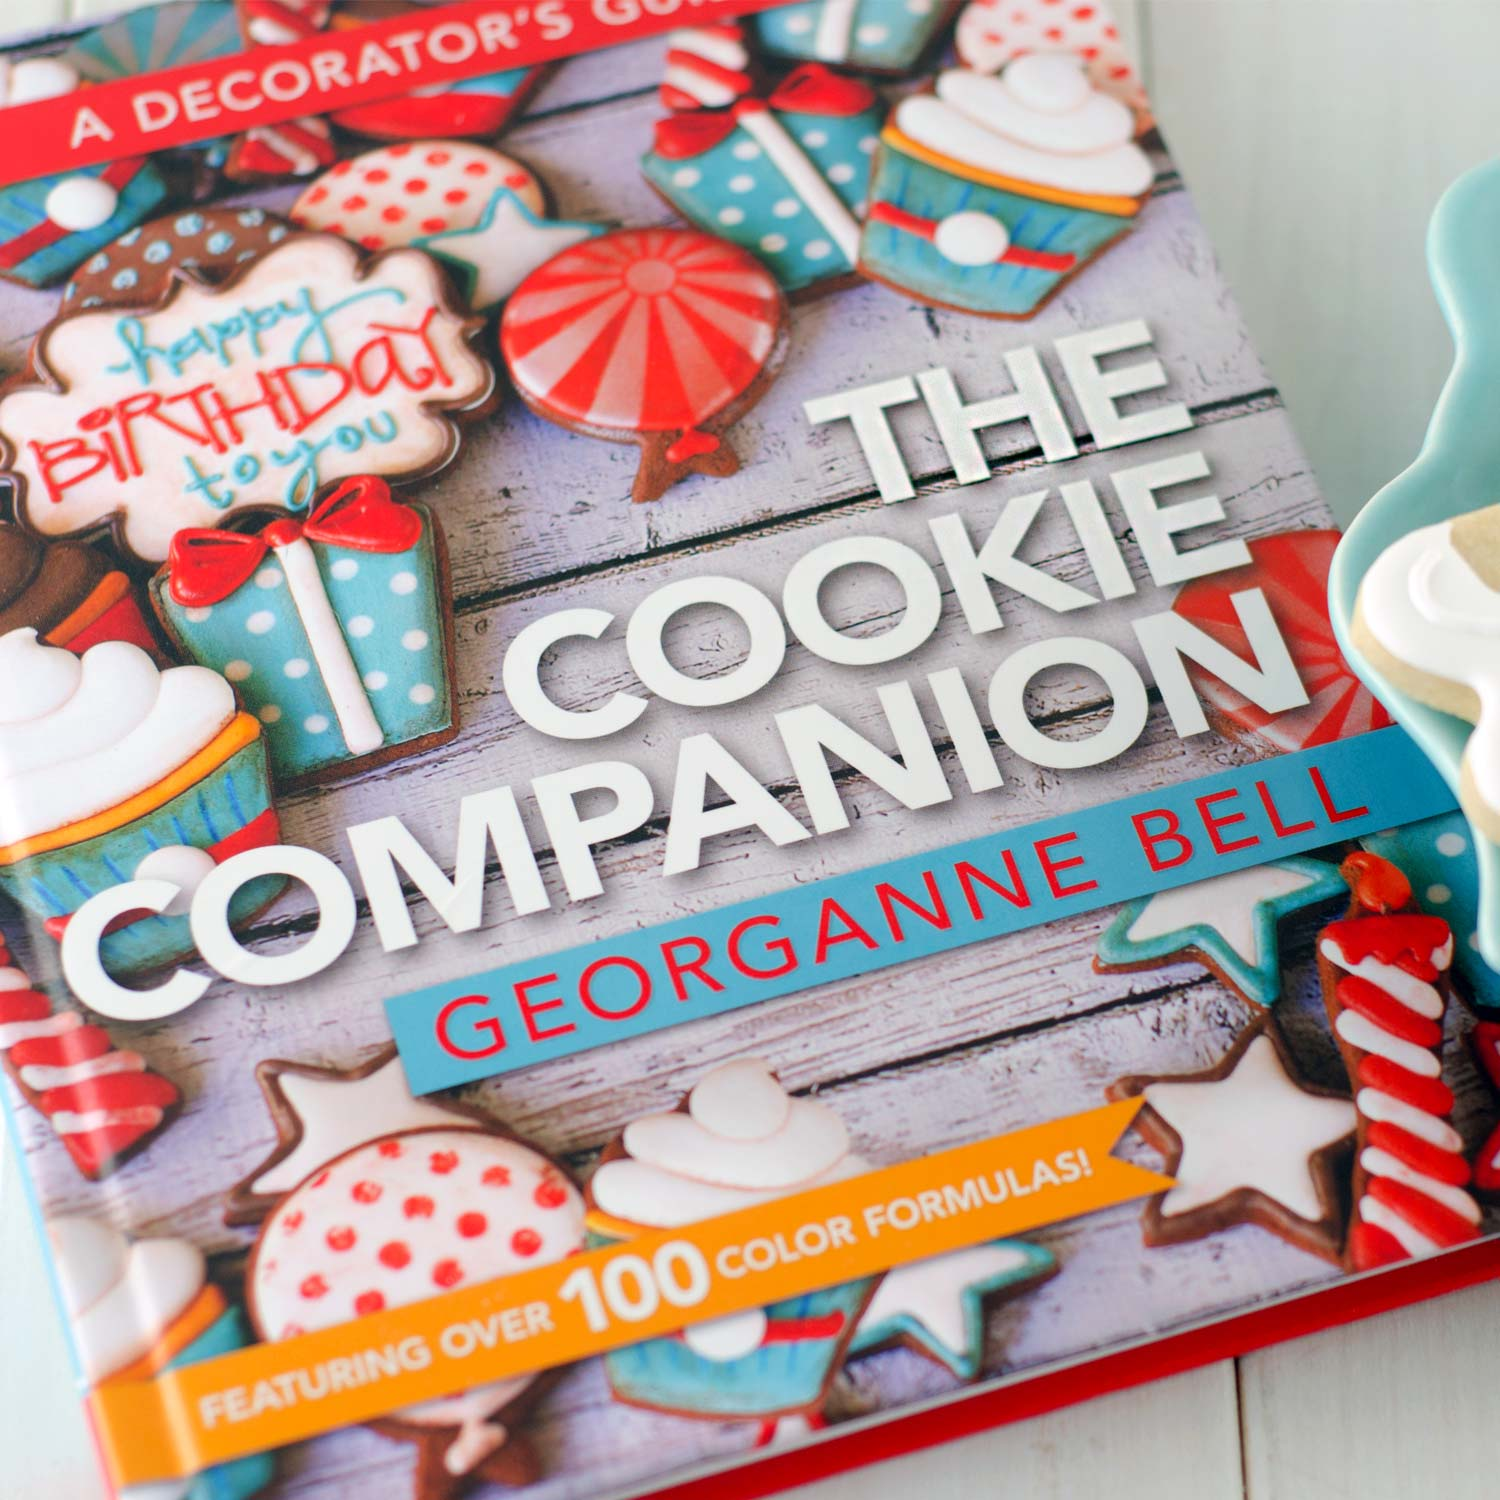 The Cookie Companion Book Giveaway